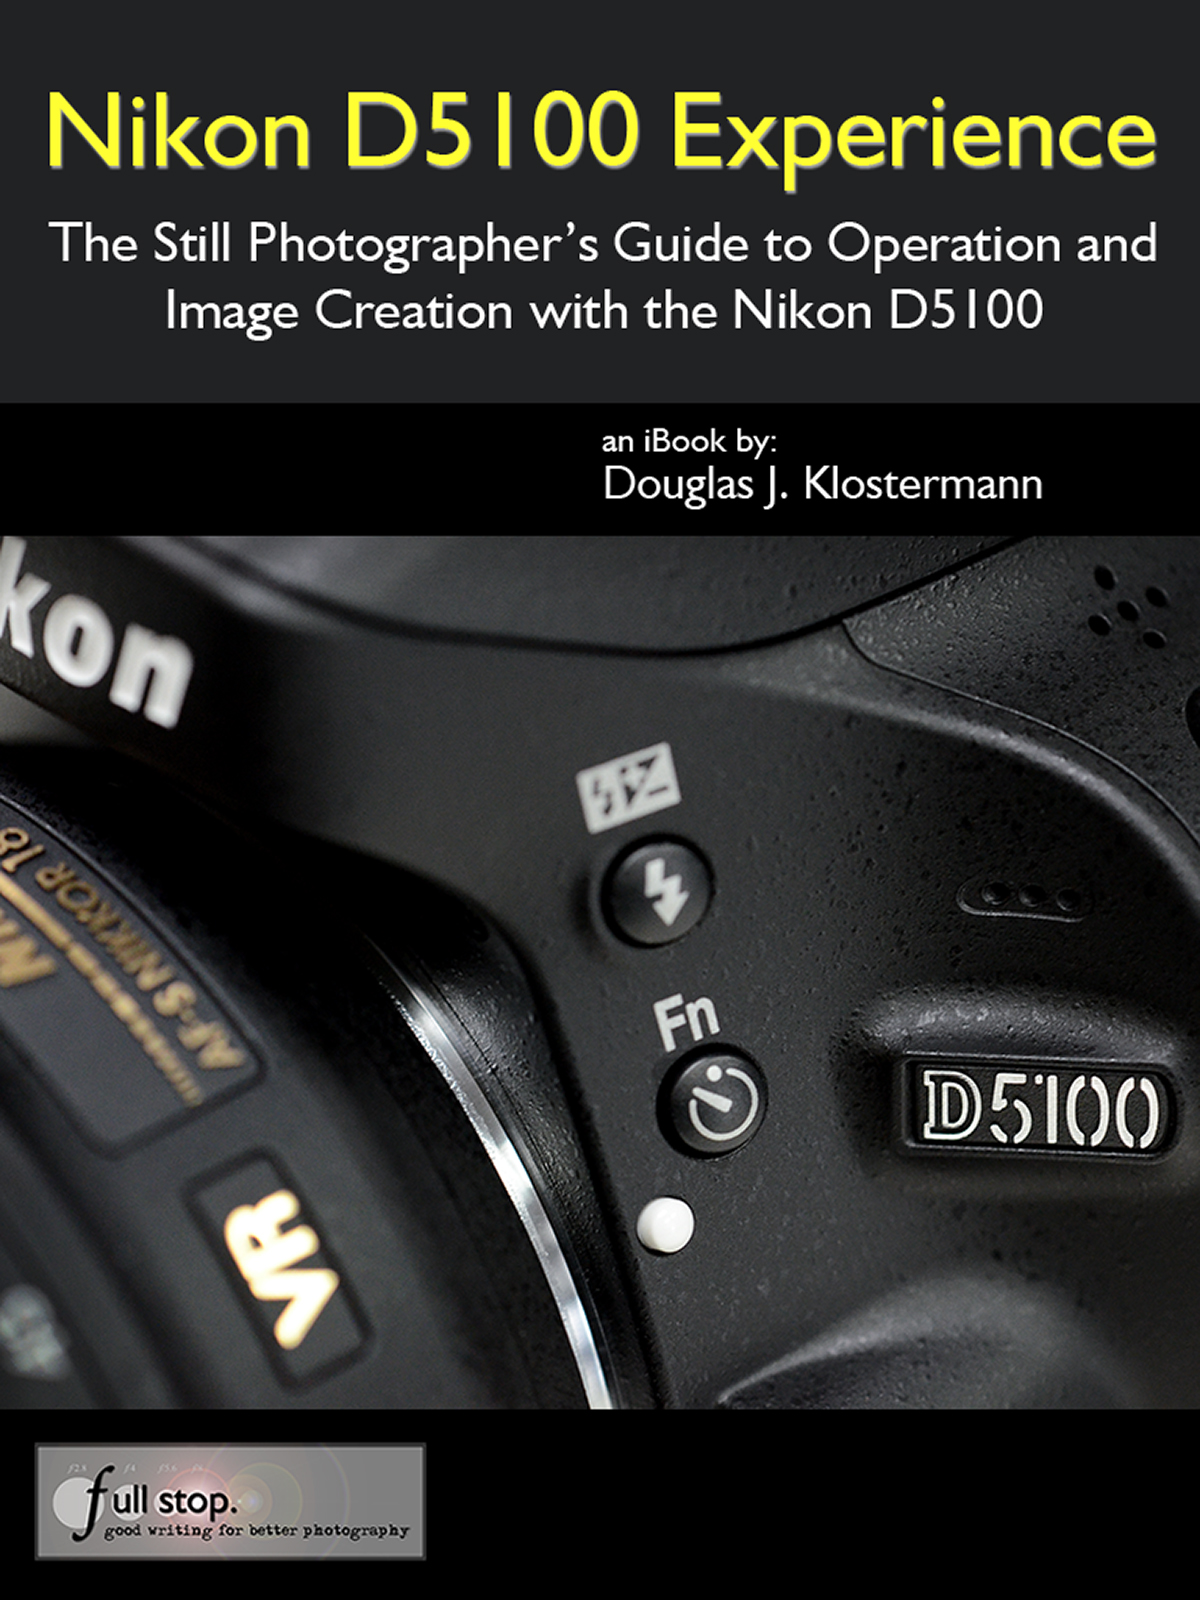 Nikon D5100 Experience - The Still Photographer's Guide to Operation and Image Creation with the Nikon D5100 By: Douglas Klostermann